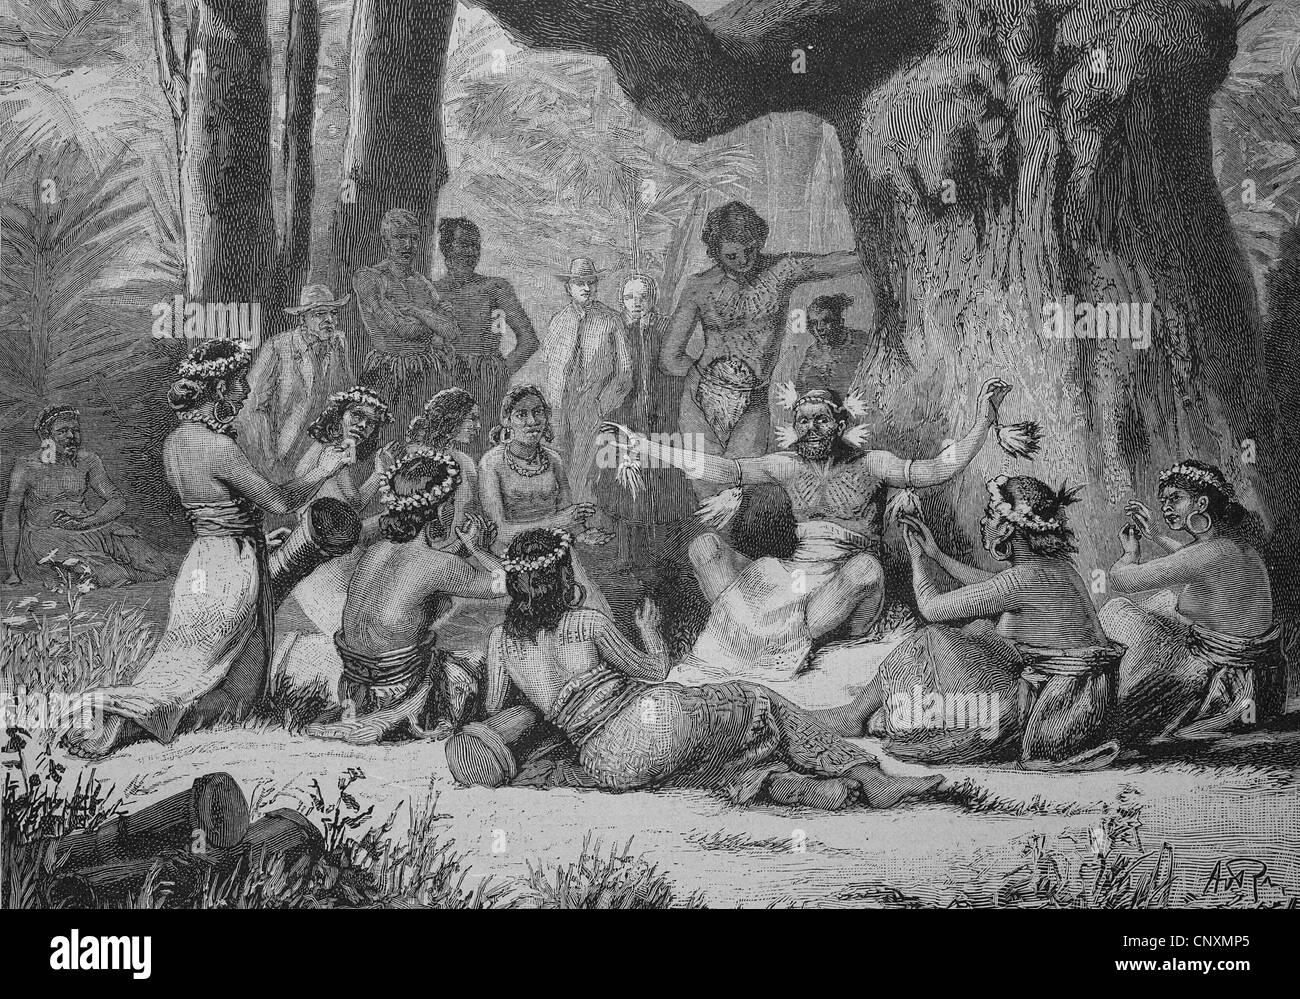 Medicine man on the Marshall Islands, historical engraving, 1883 - Stock Image